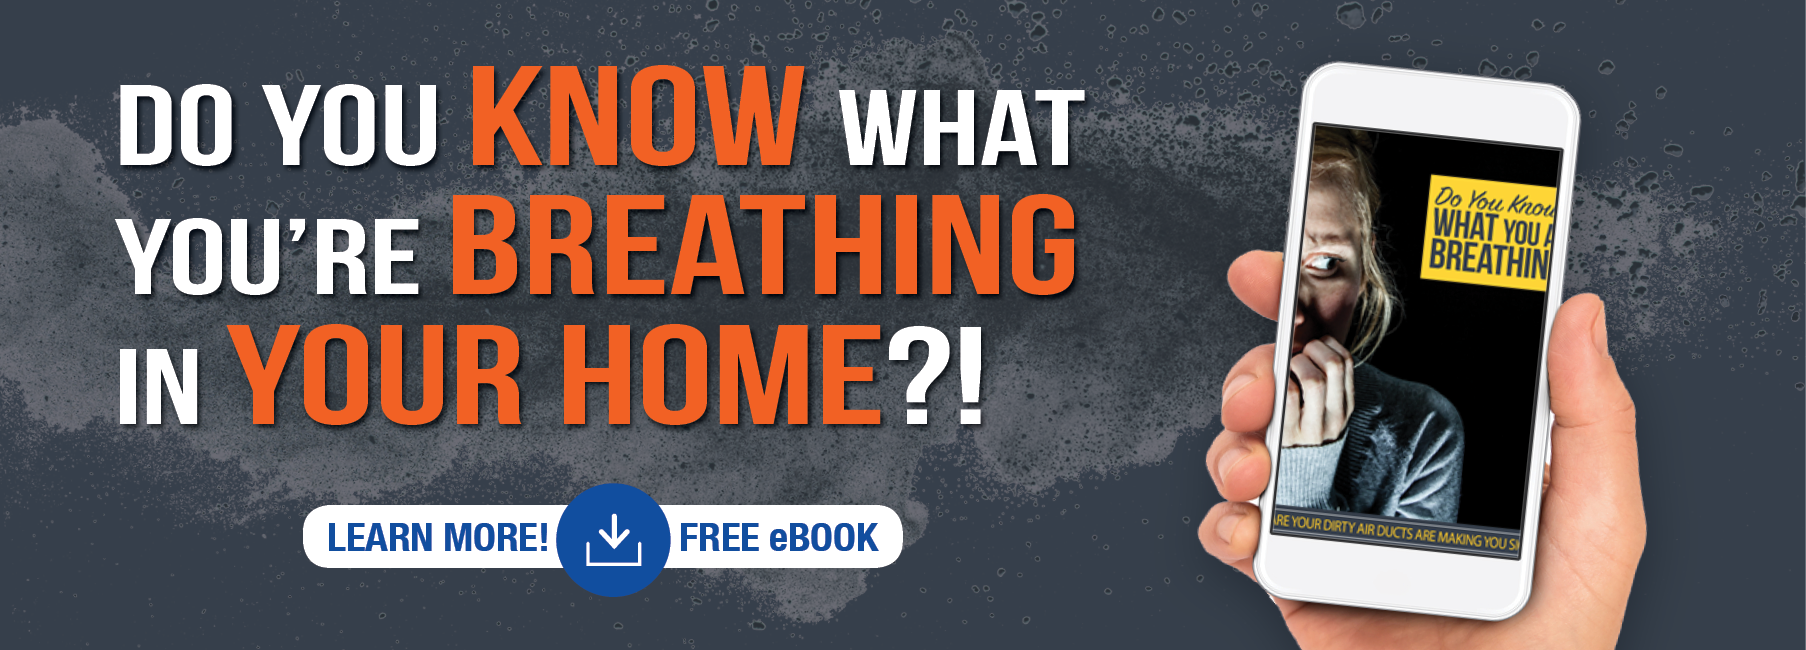 Do You Know What You're Breathing In Your Home?